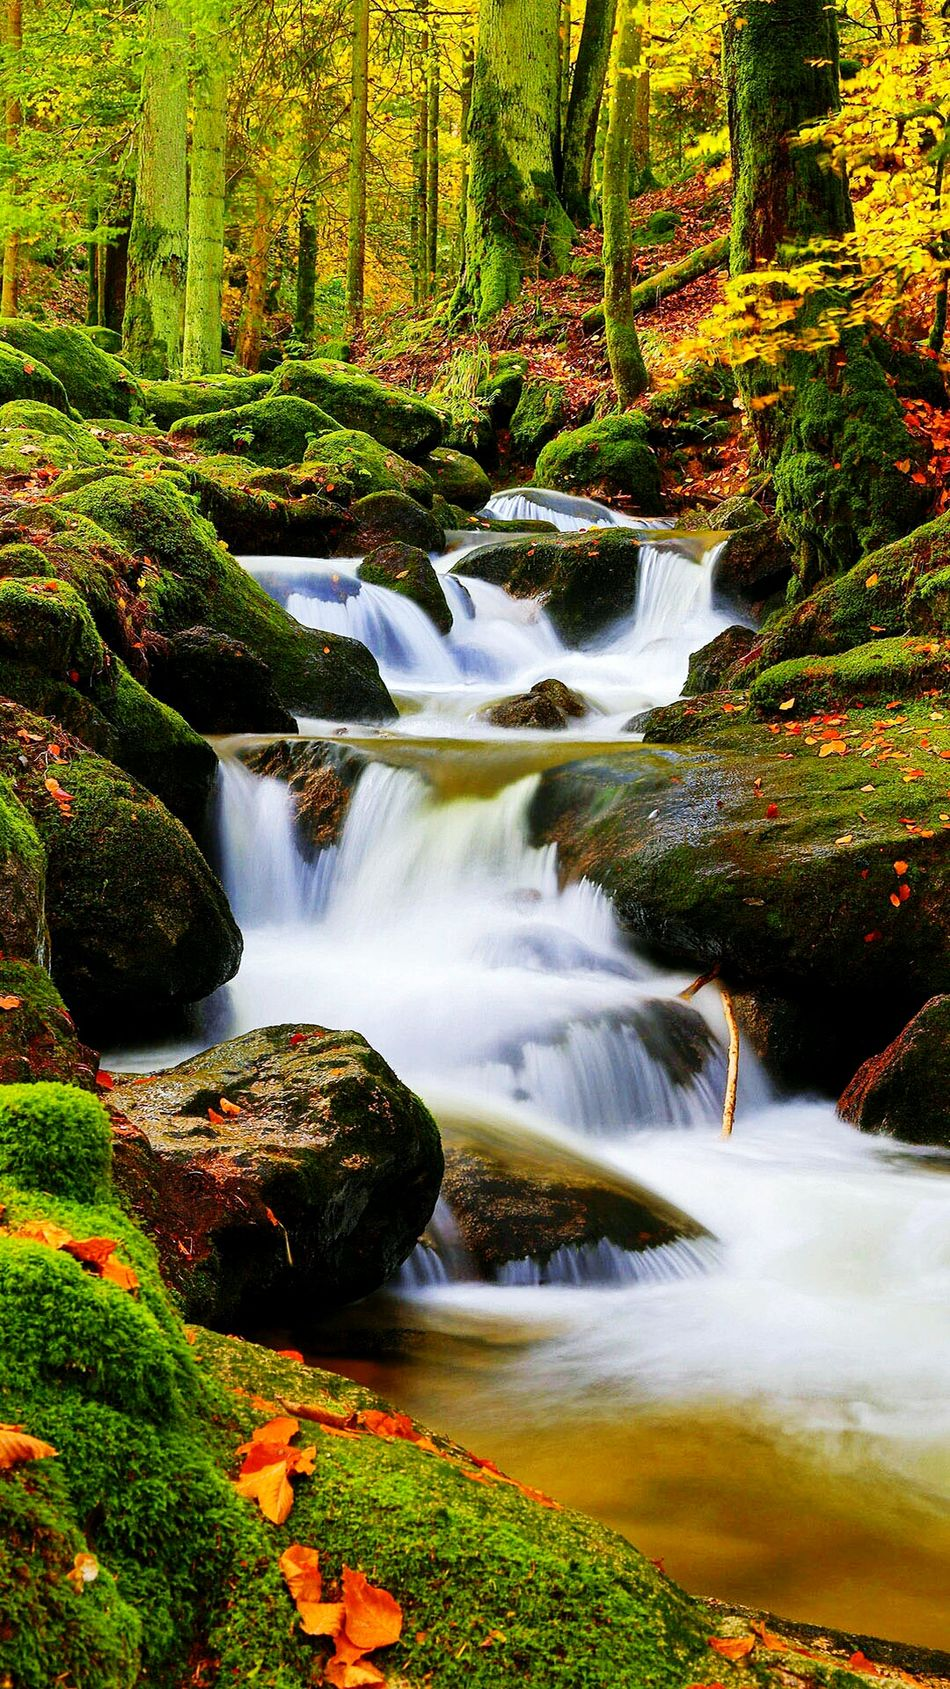 It's Perfect Nature Tree Scenics Beauty In Nature No People Forest Water Landscape Outdoors Waterfall Day